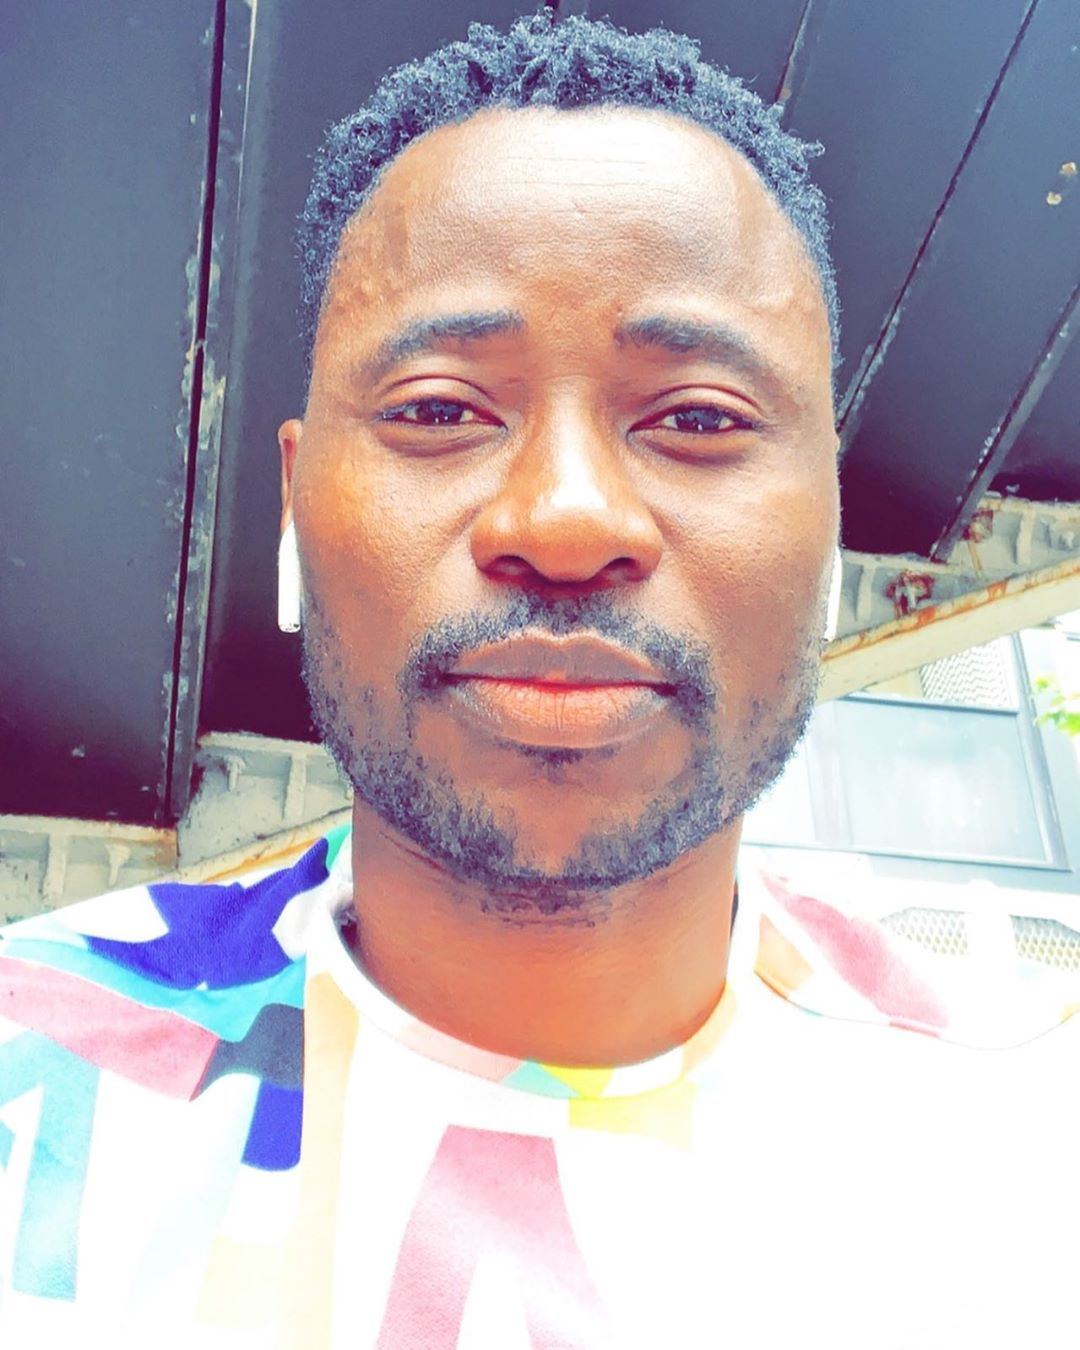 Bisi Alimi blasts Bobrisky for supporting Biodun Fatoyinbo, He replies